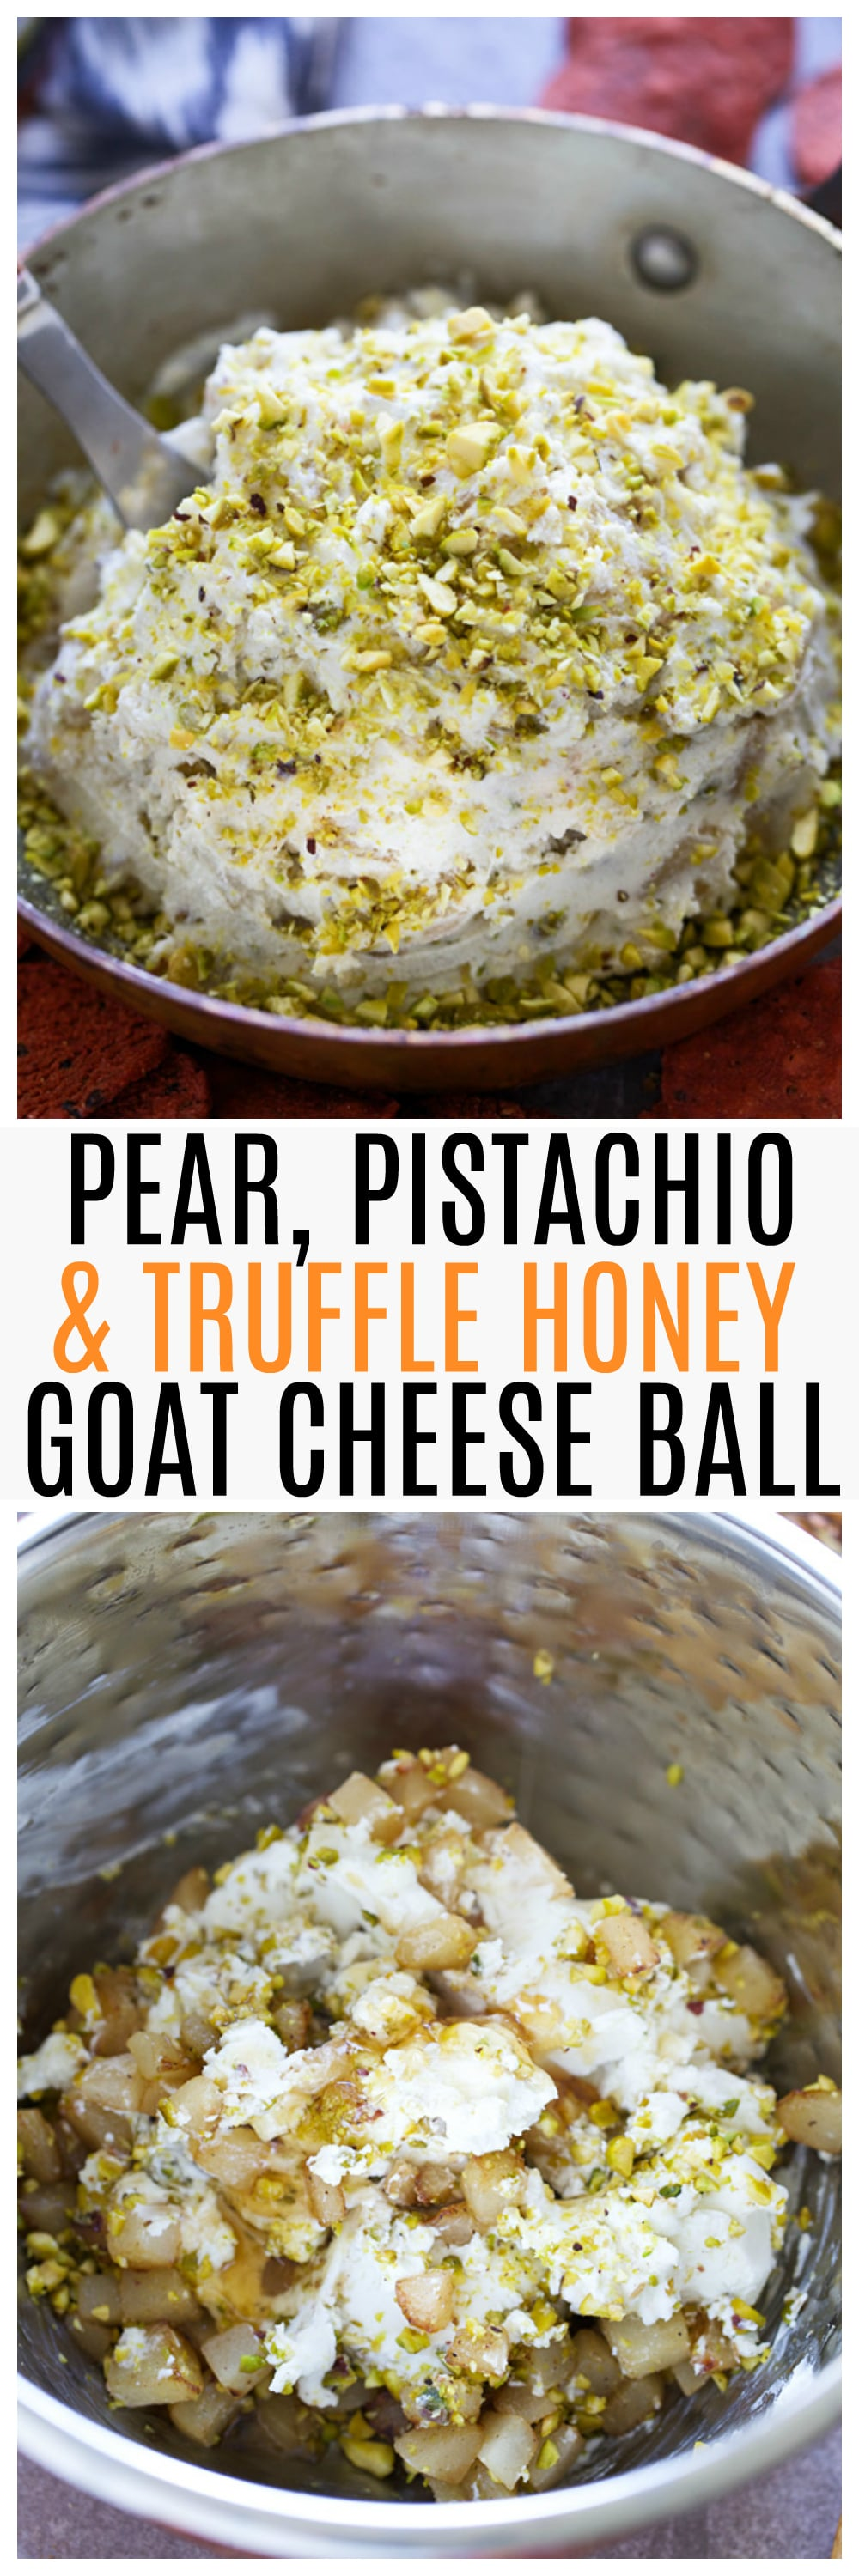 Pear, Pistachio and Truffle Honey Goat Cheese Ball